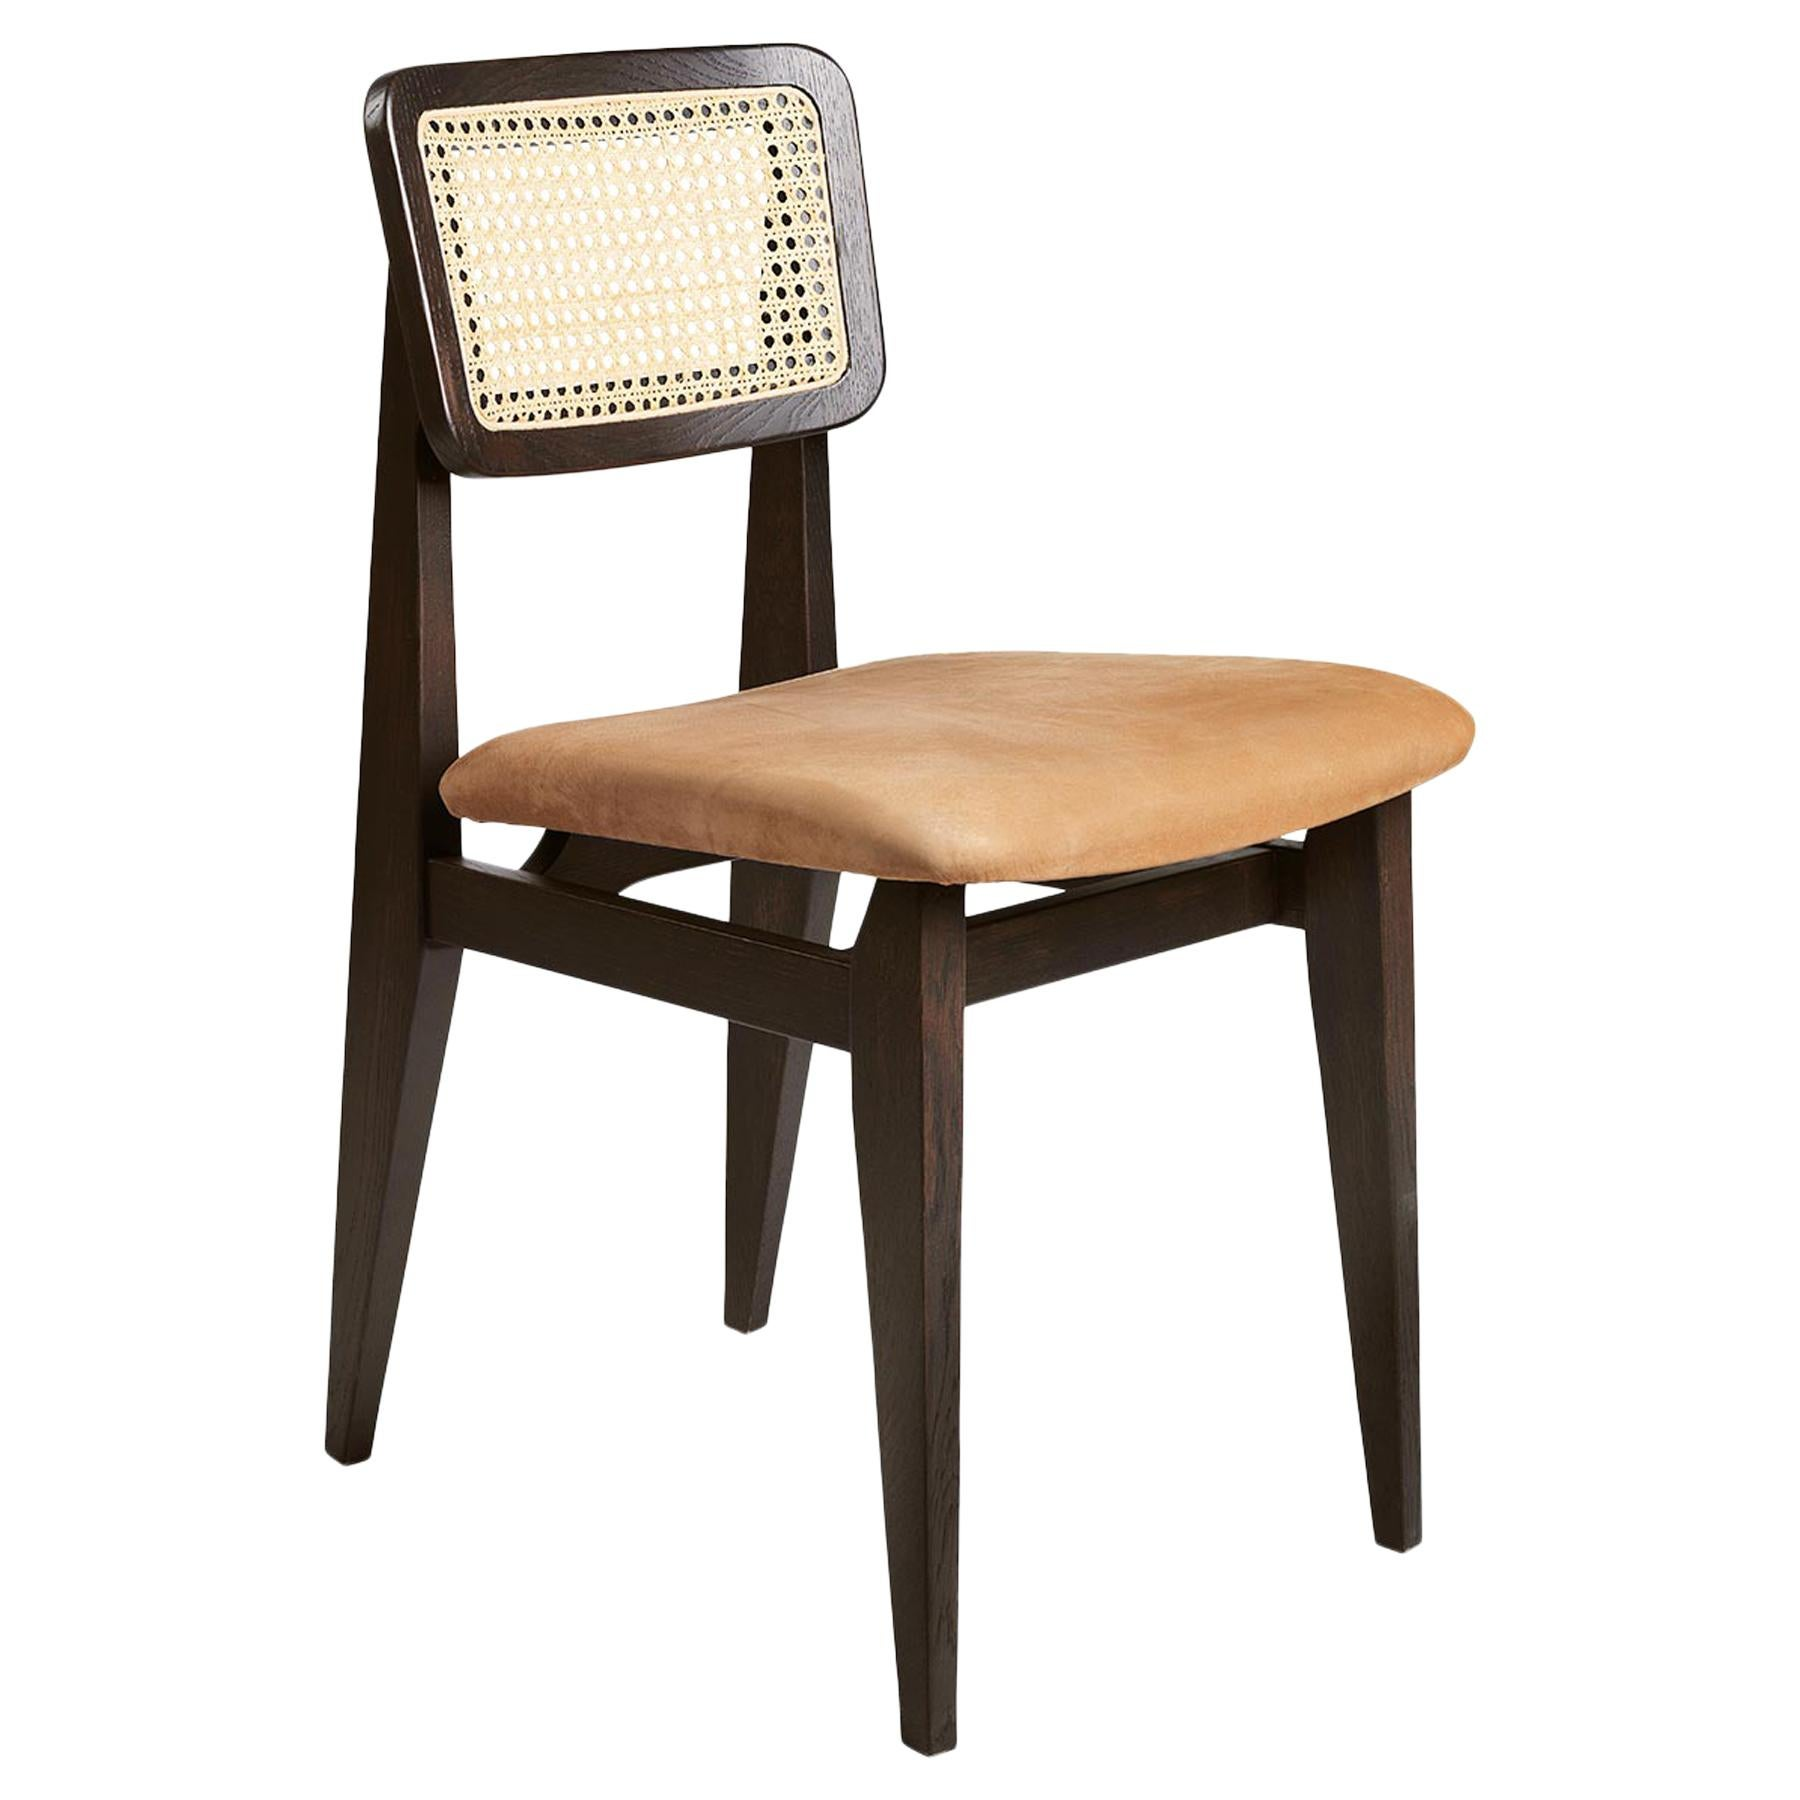 C Chair Dining Chair, Seat Upholstered, French Cane Back, Brown Stained Oak